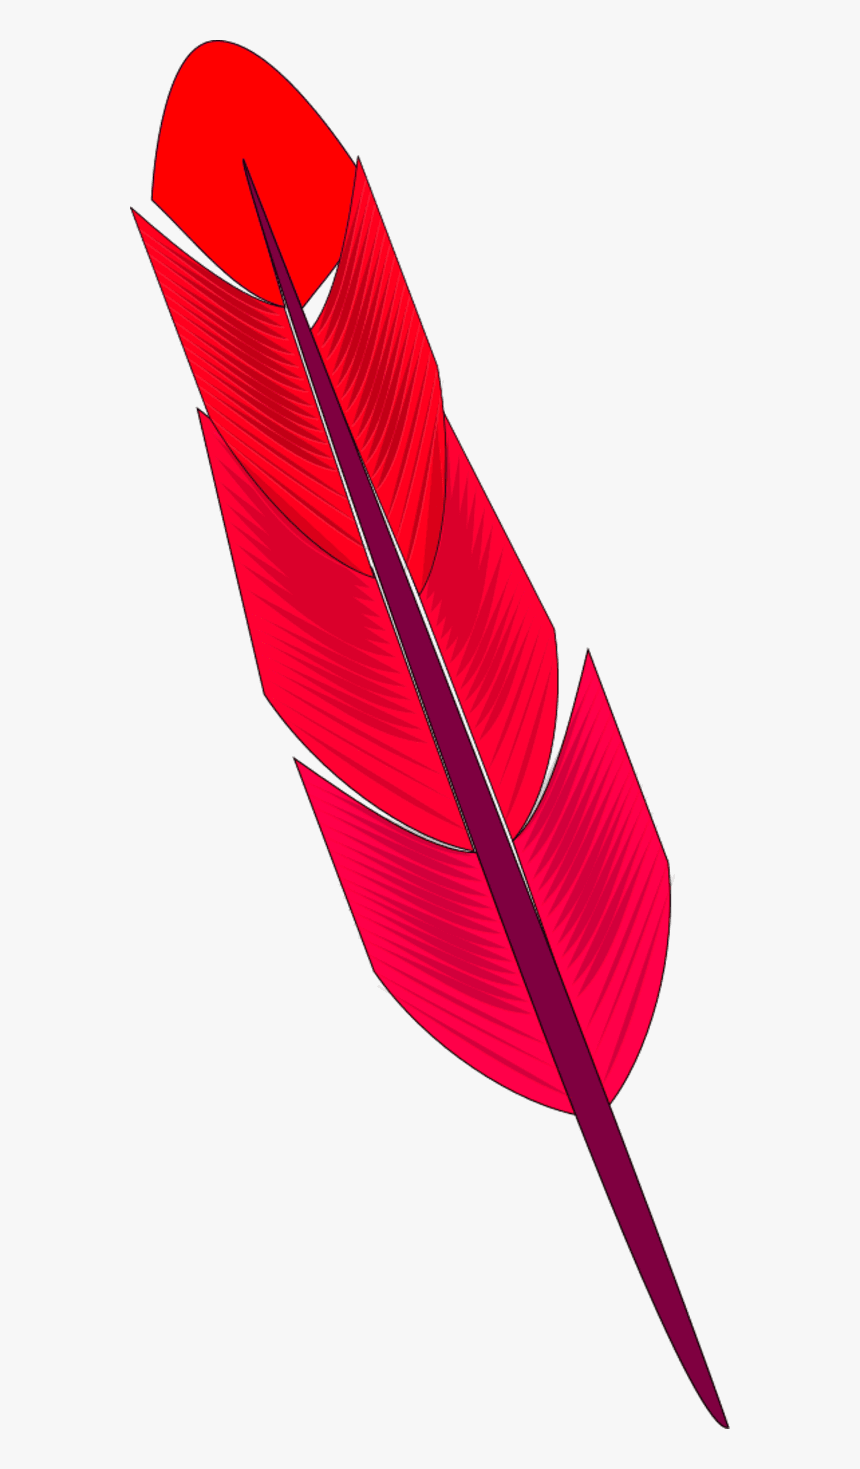 Red Feather - Colorfulness, HD Png Download, Free Download